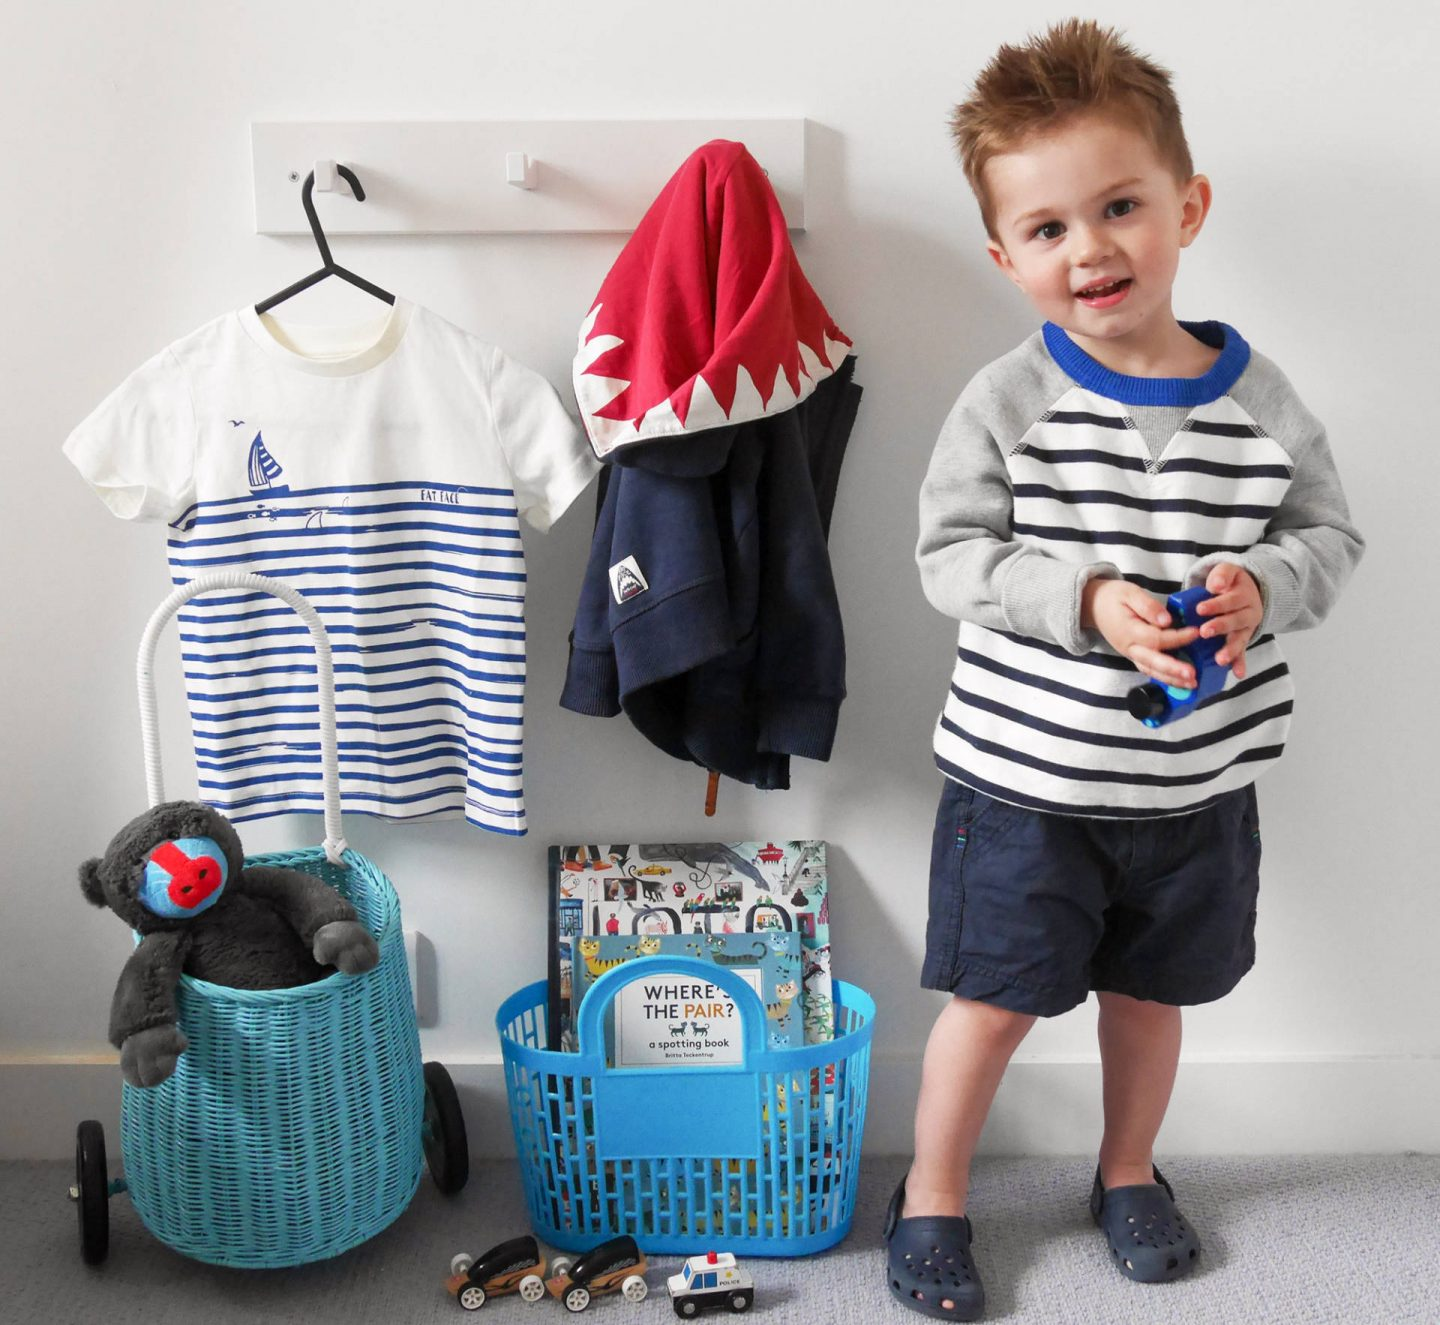 Don't Forget The Kids | Fatface Kids Range Now from 2-3 Years {Sponsored}